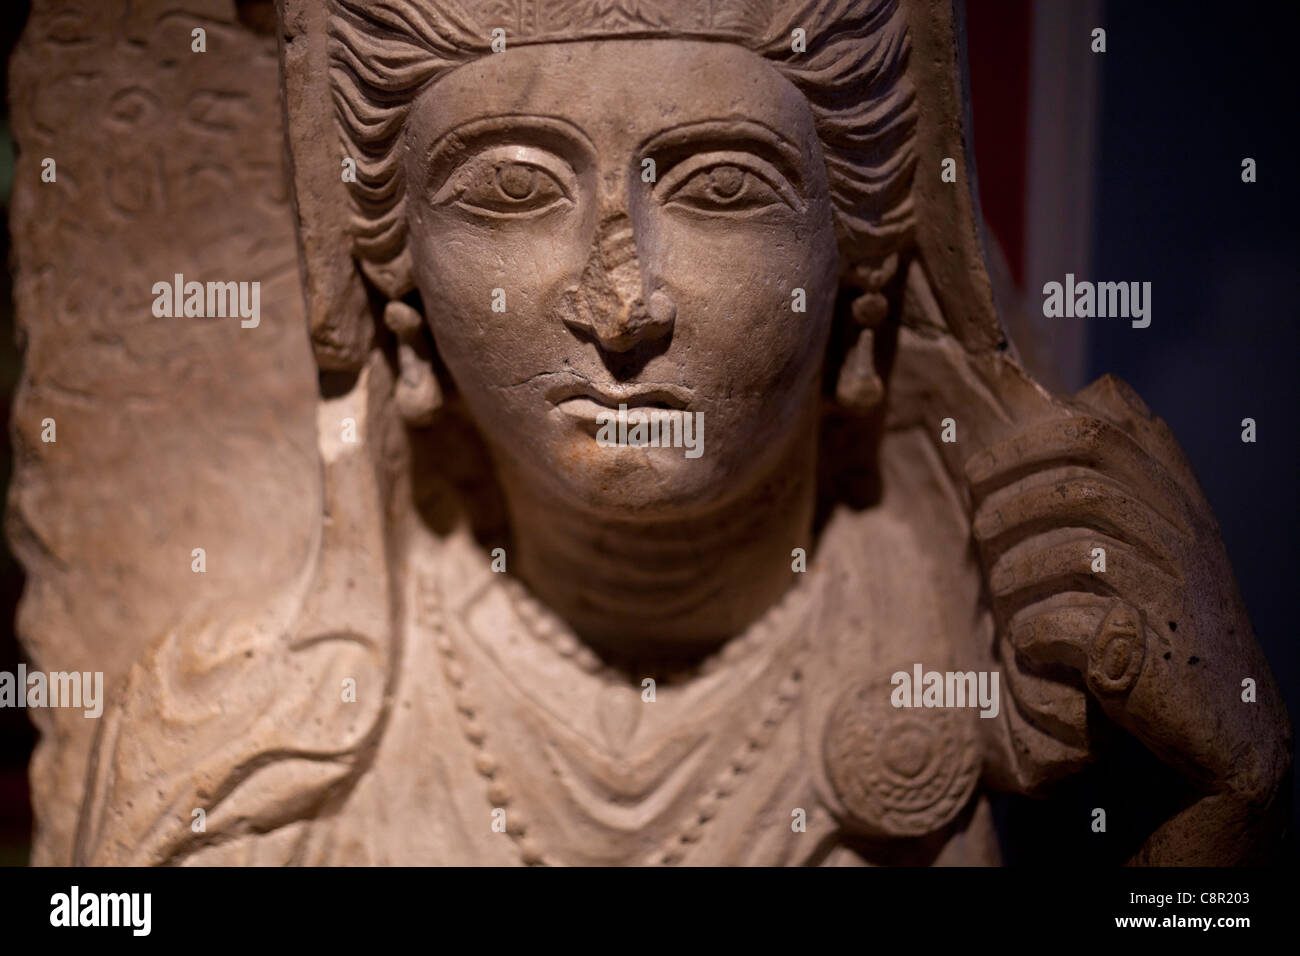 Second Century AD Female Funerary Bust From Palmyra Syria